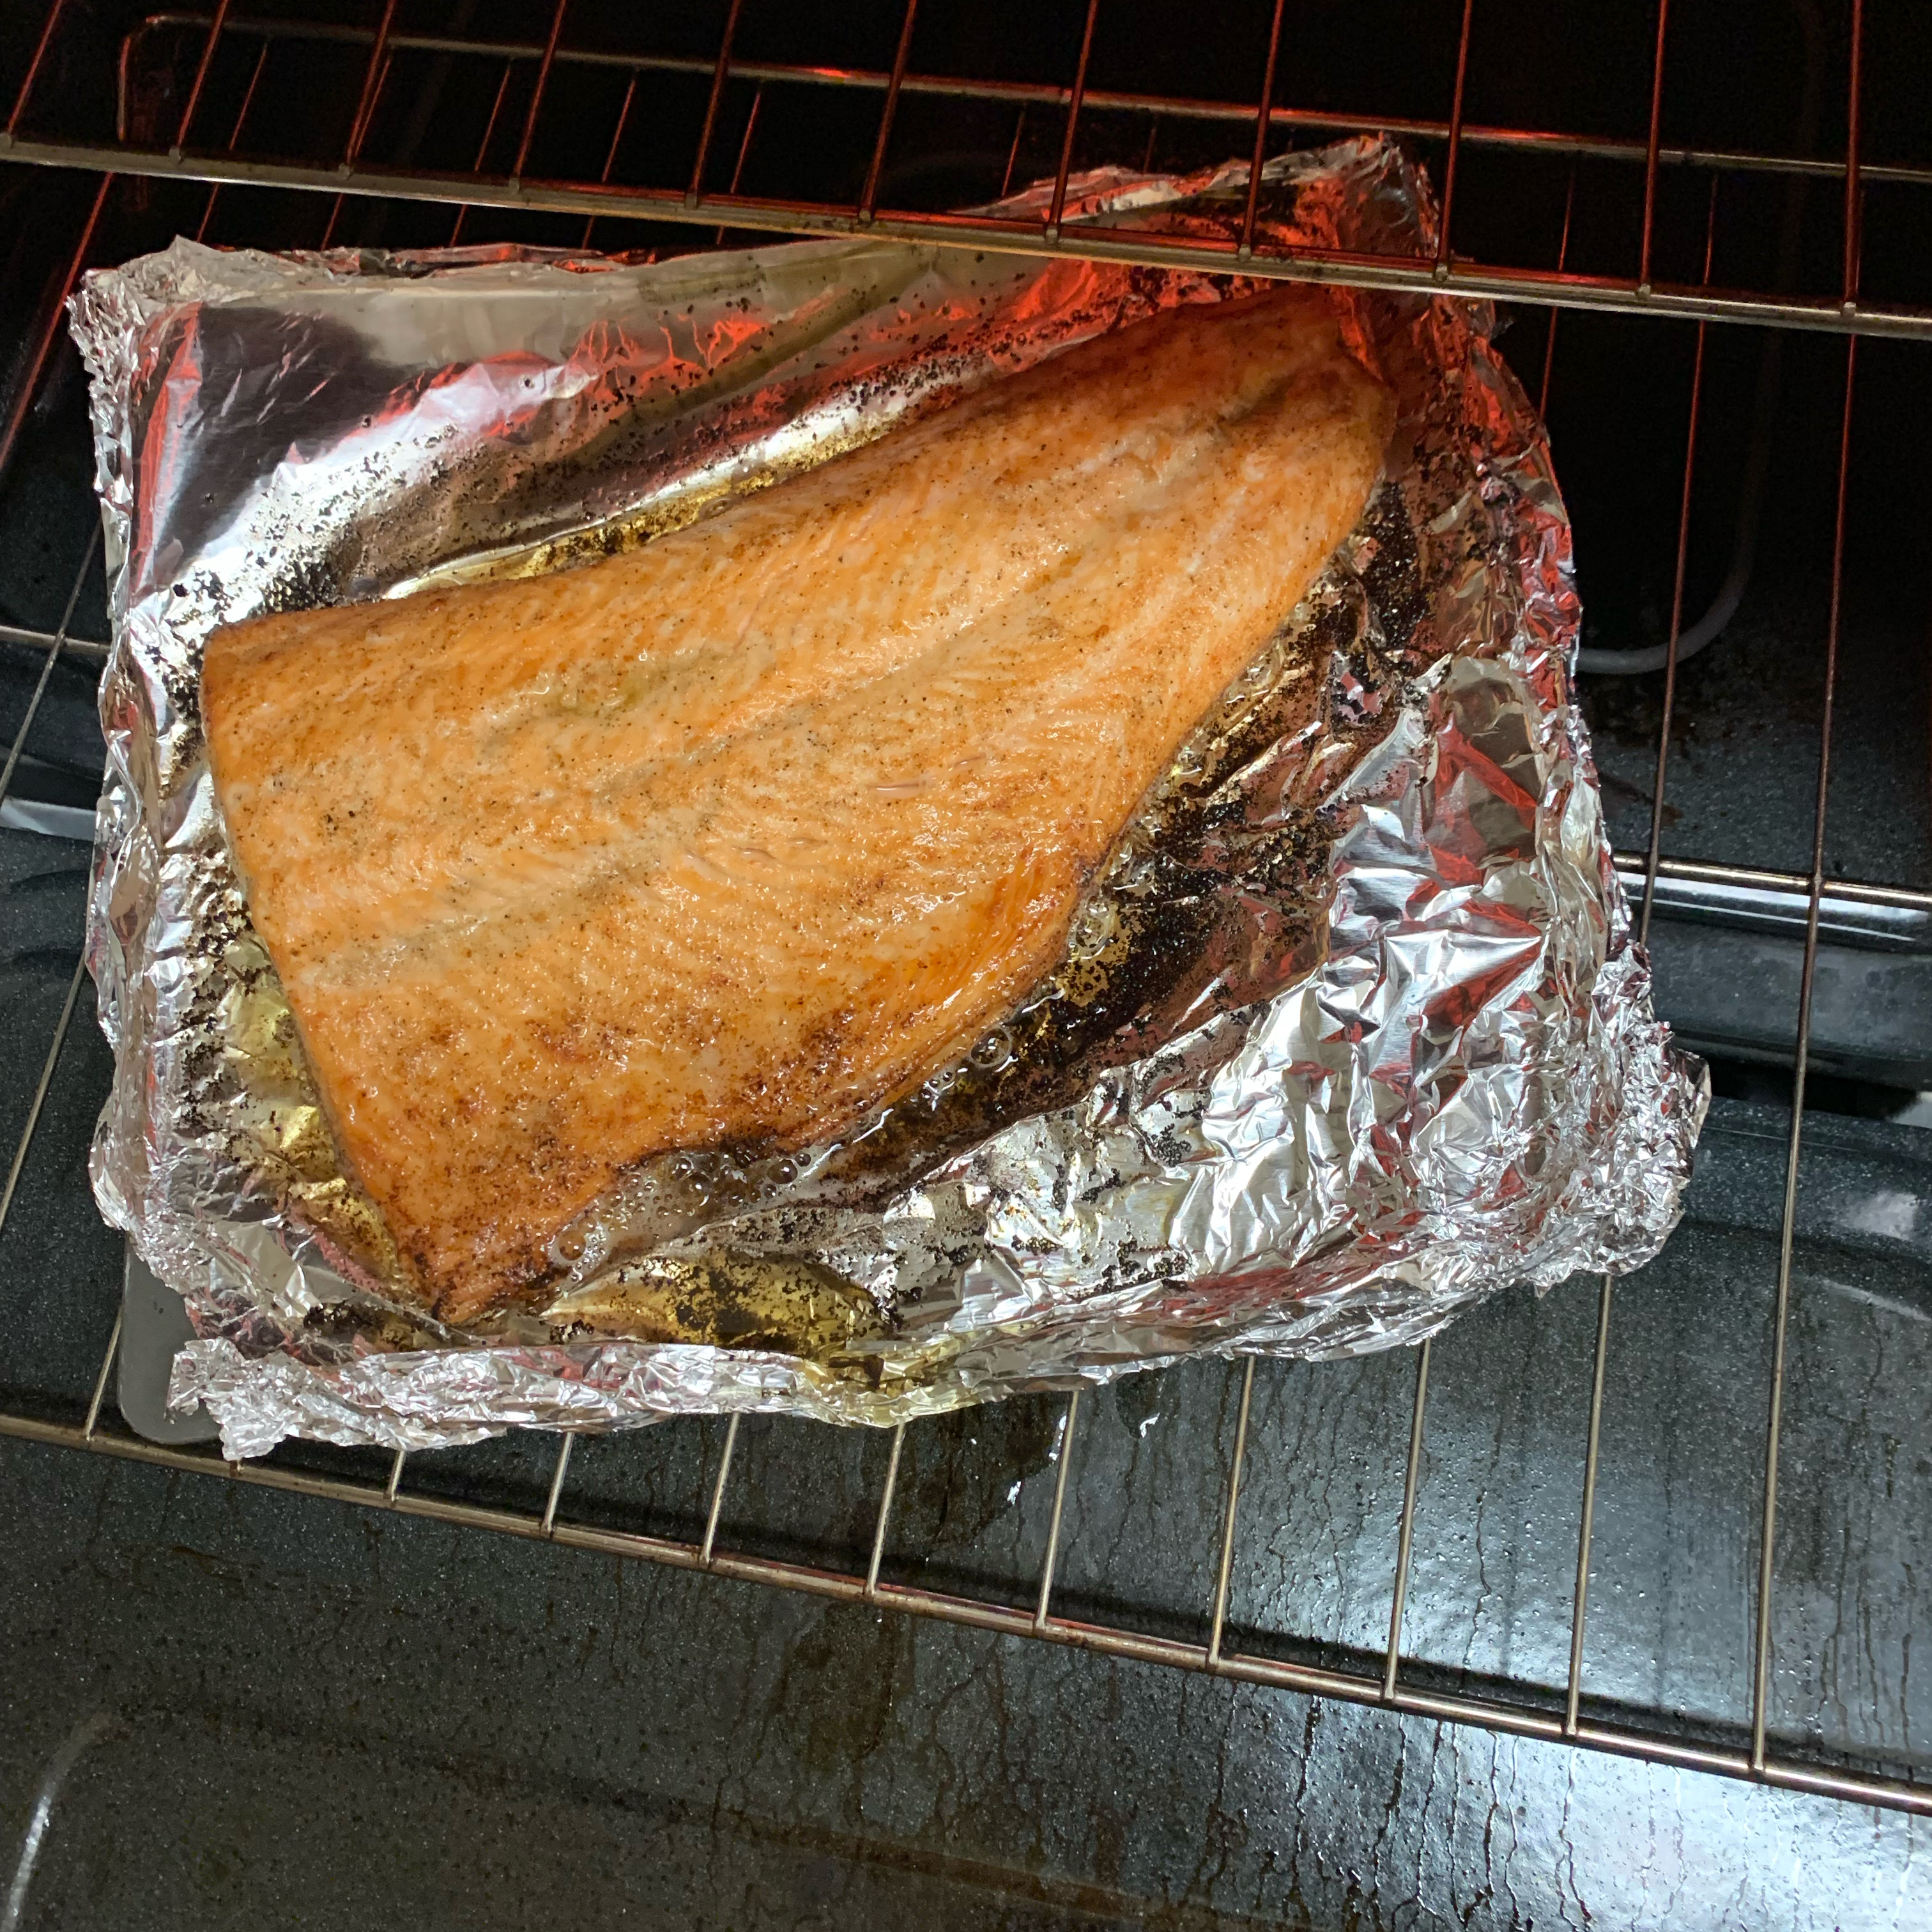 Melt-in-Your-Mouth Broiled Salmon Jaclyn Rose